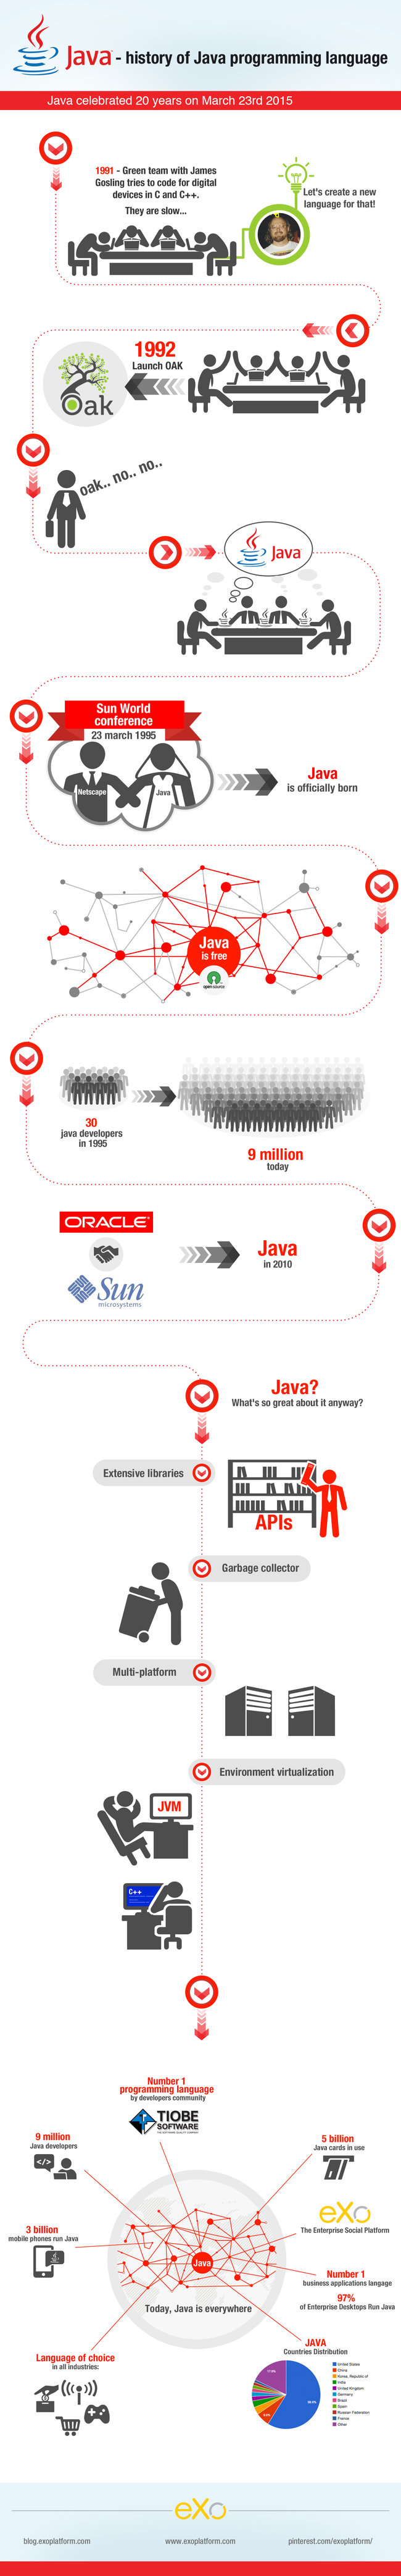 The History of the Java Programming Language (Infographic)